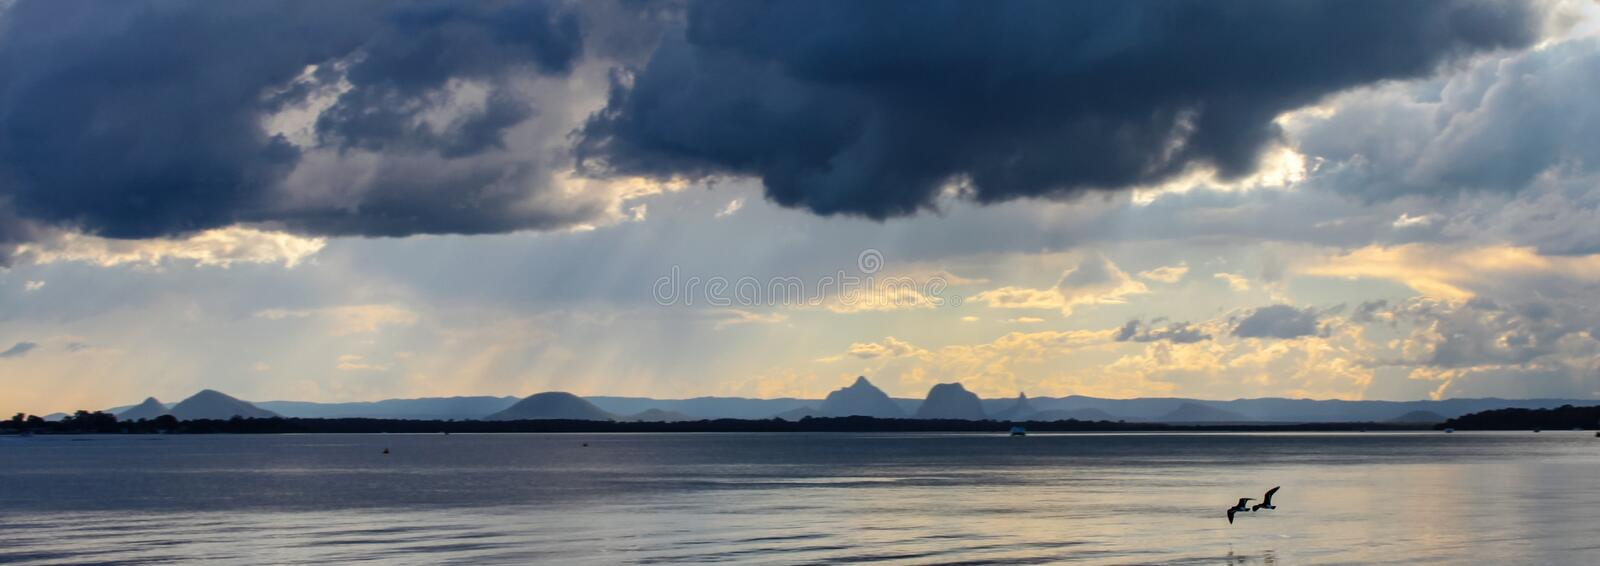 Together- Two birds fly over water under ominous dark clouds with golden sun breaking through and rain on distant mountains - bann. Er royalty free stock images